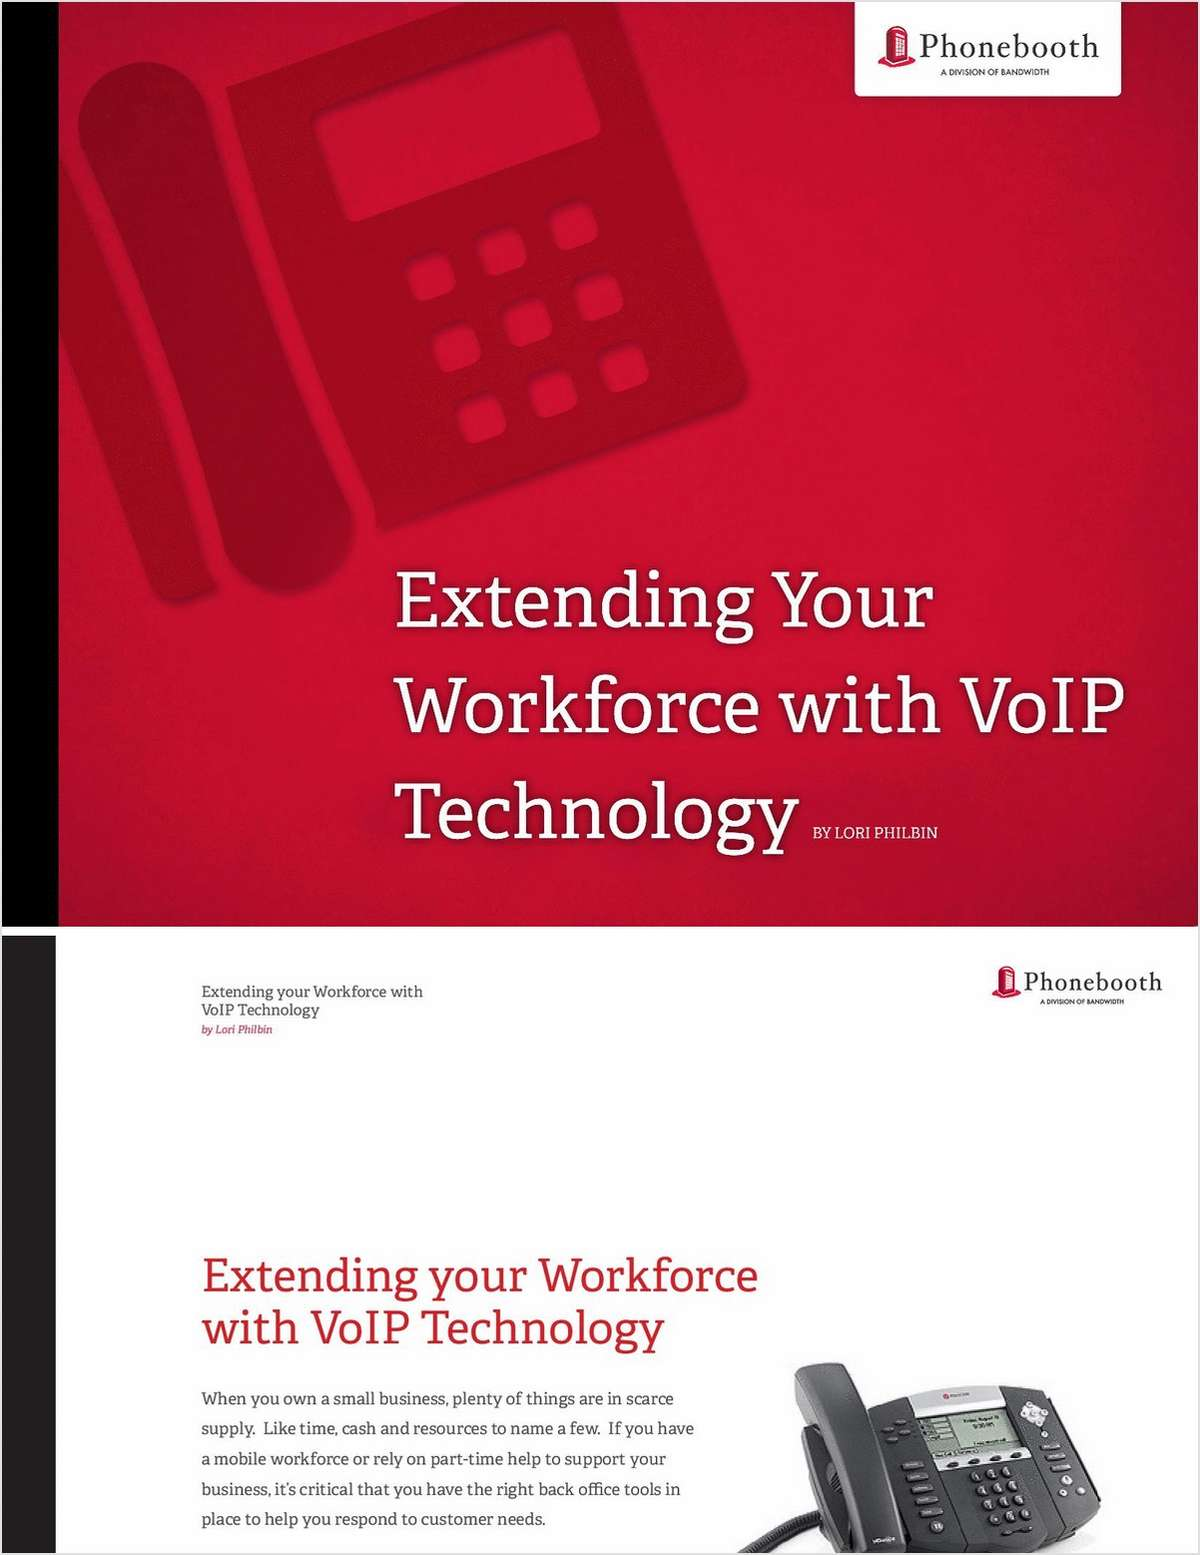 Extending Your Workforce with VoIP Technology